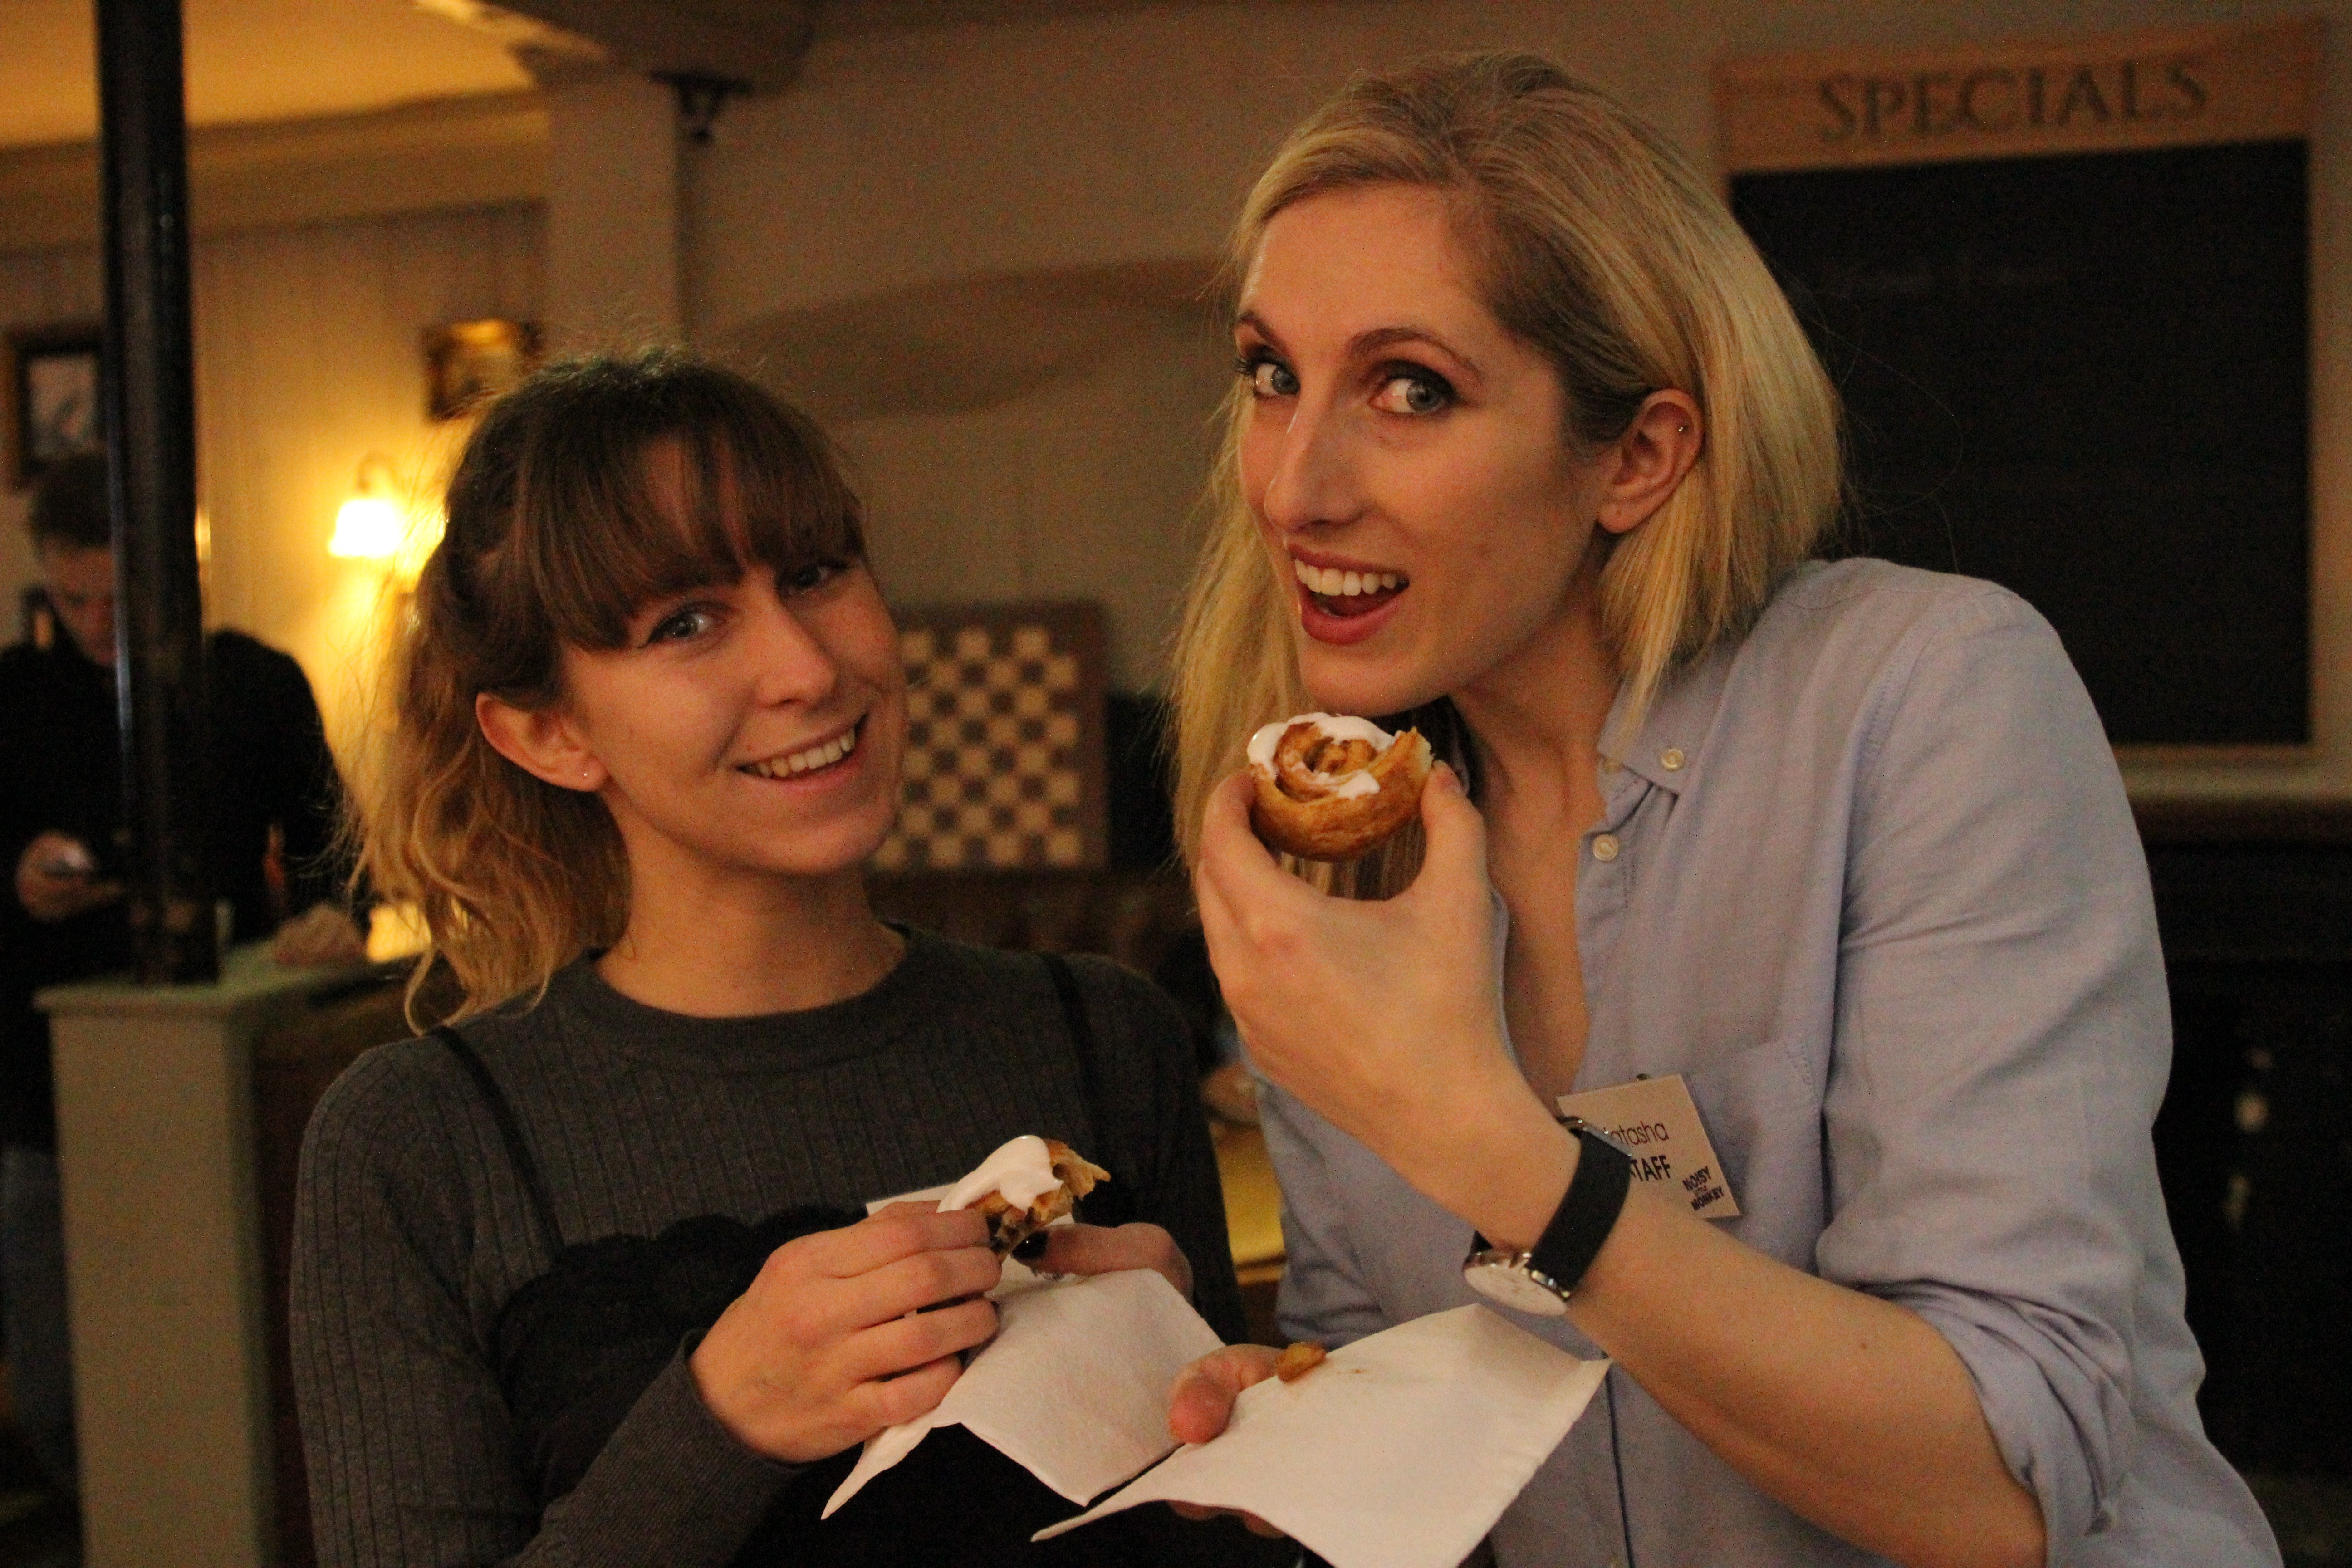 Claire and Natasha smiling and posing with their breakfast pastries